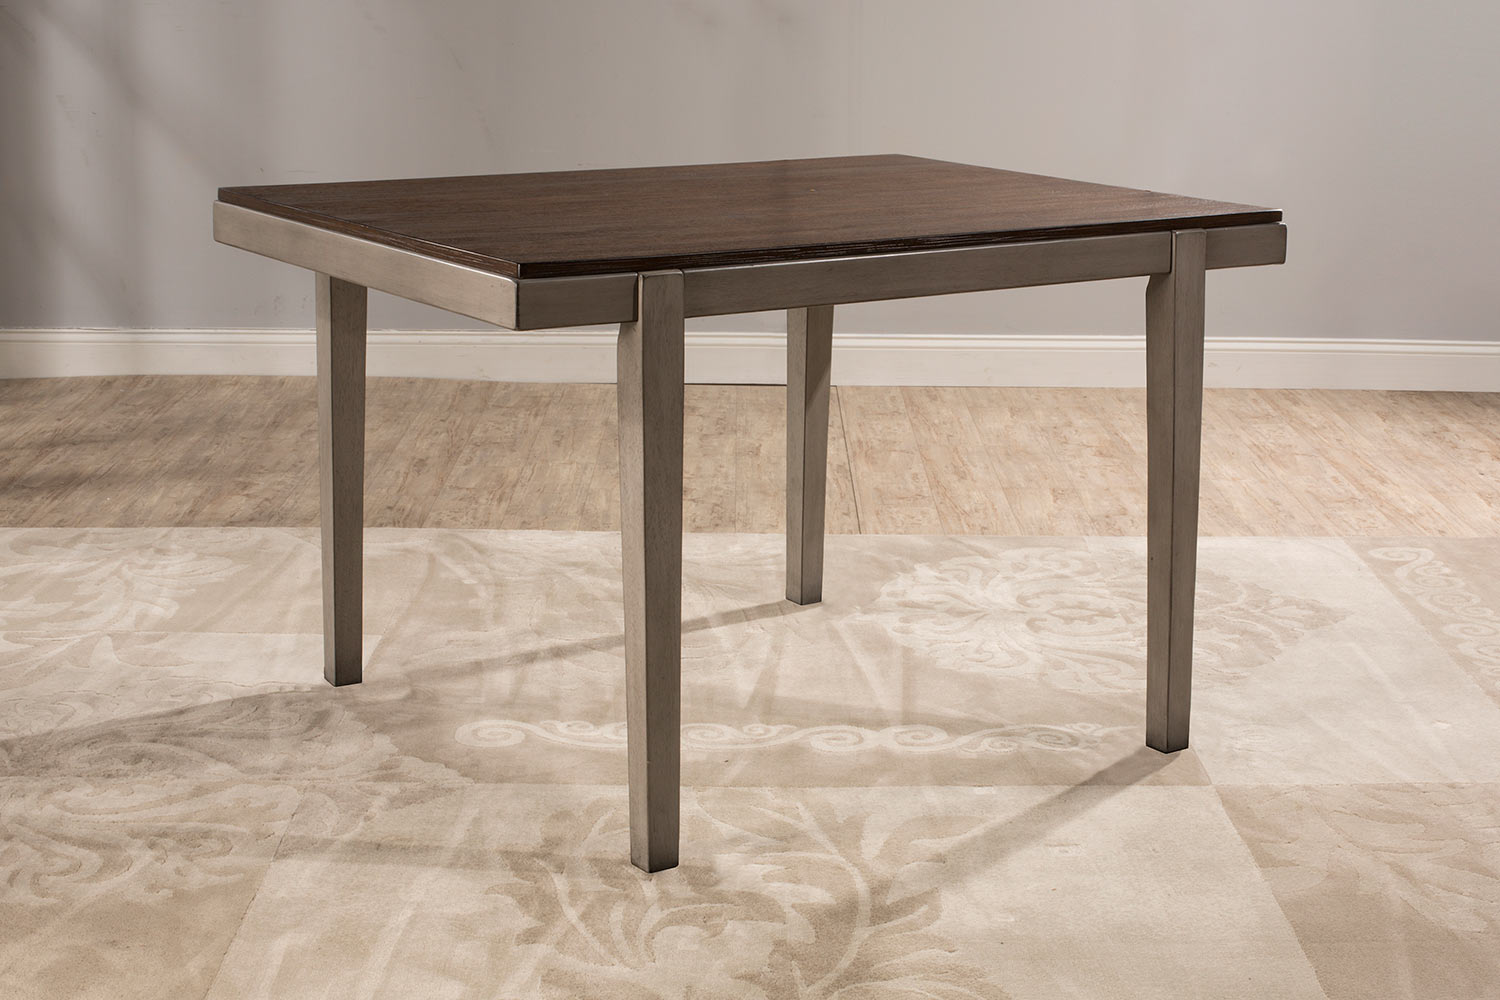 Hillsdale Garden Park Dining Table - Gray/Espresso